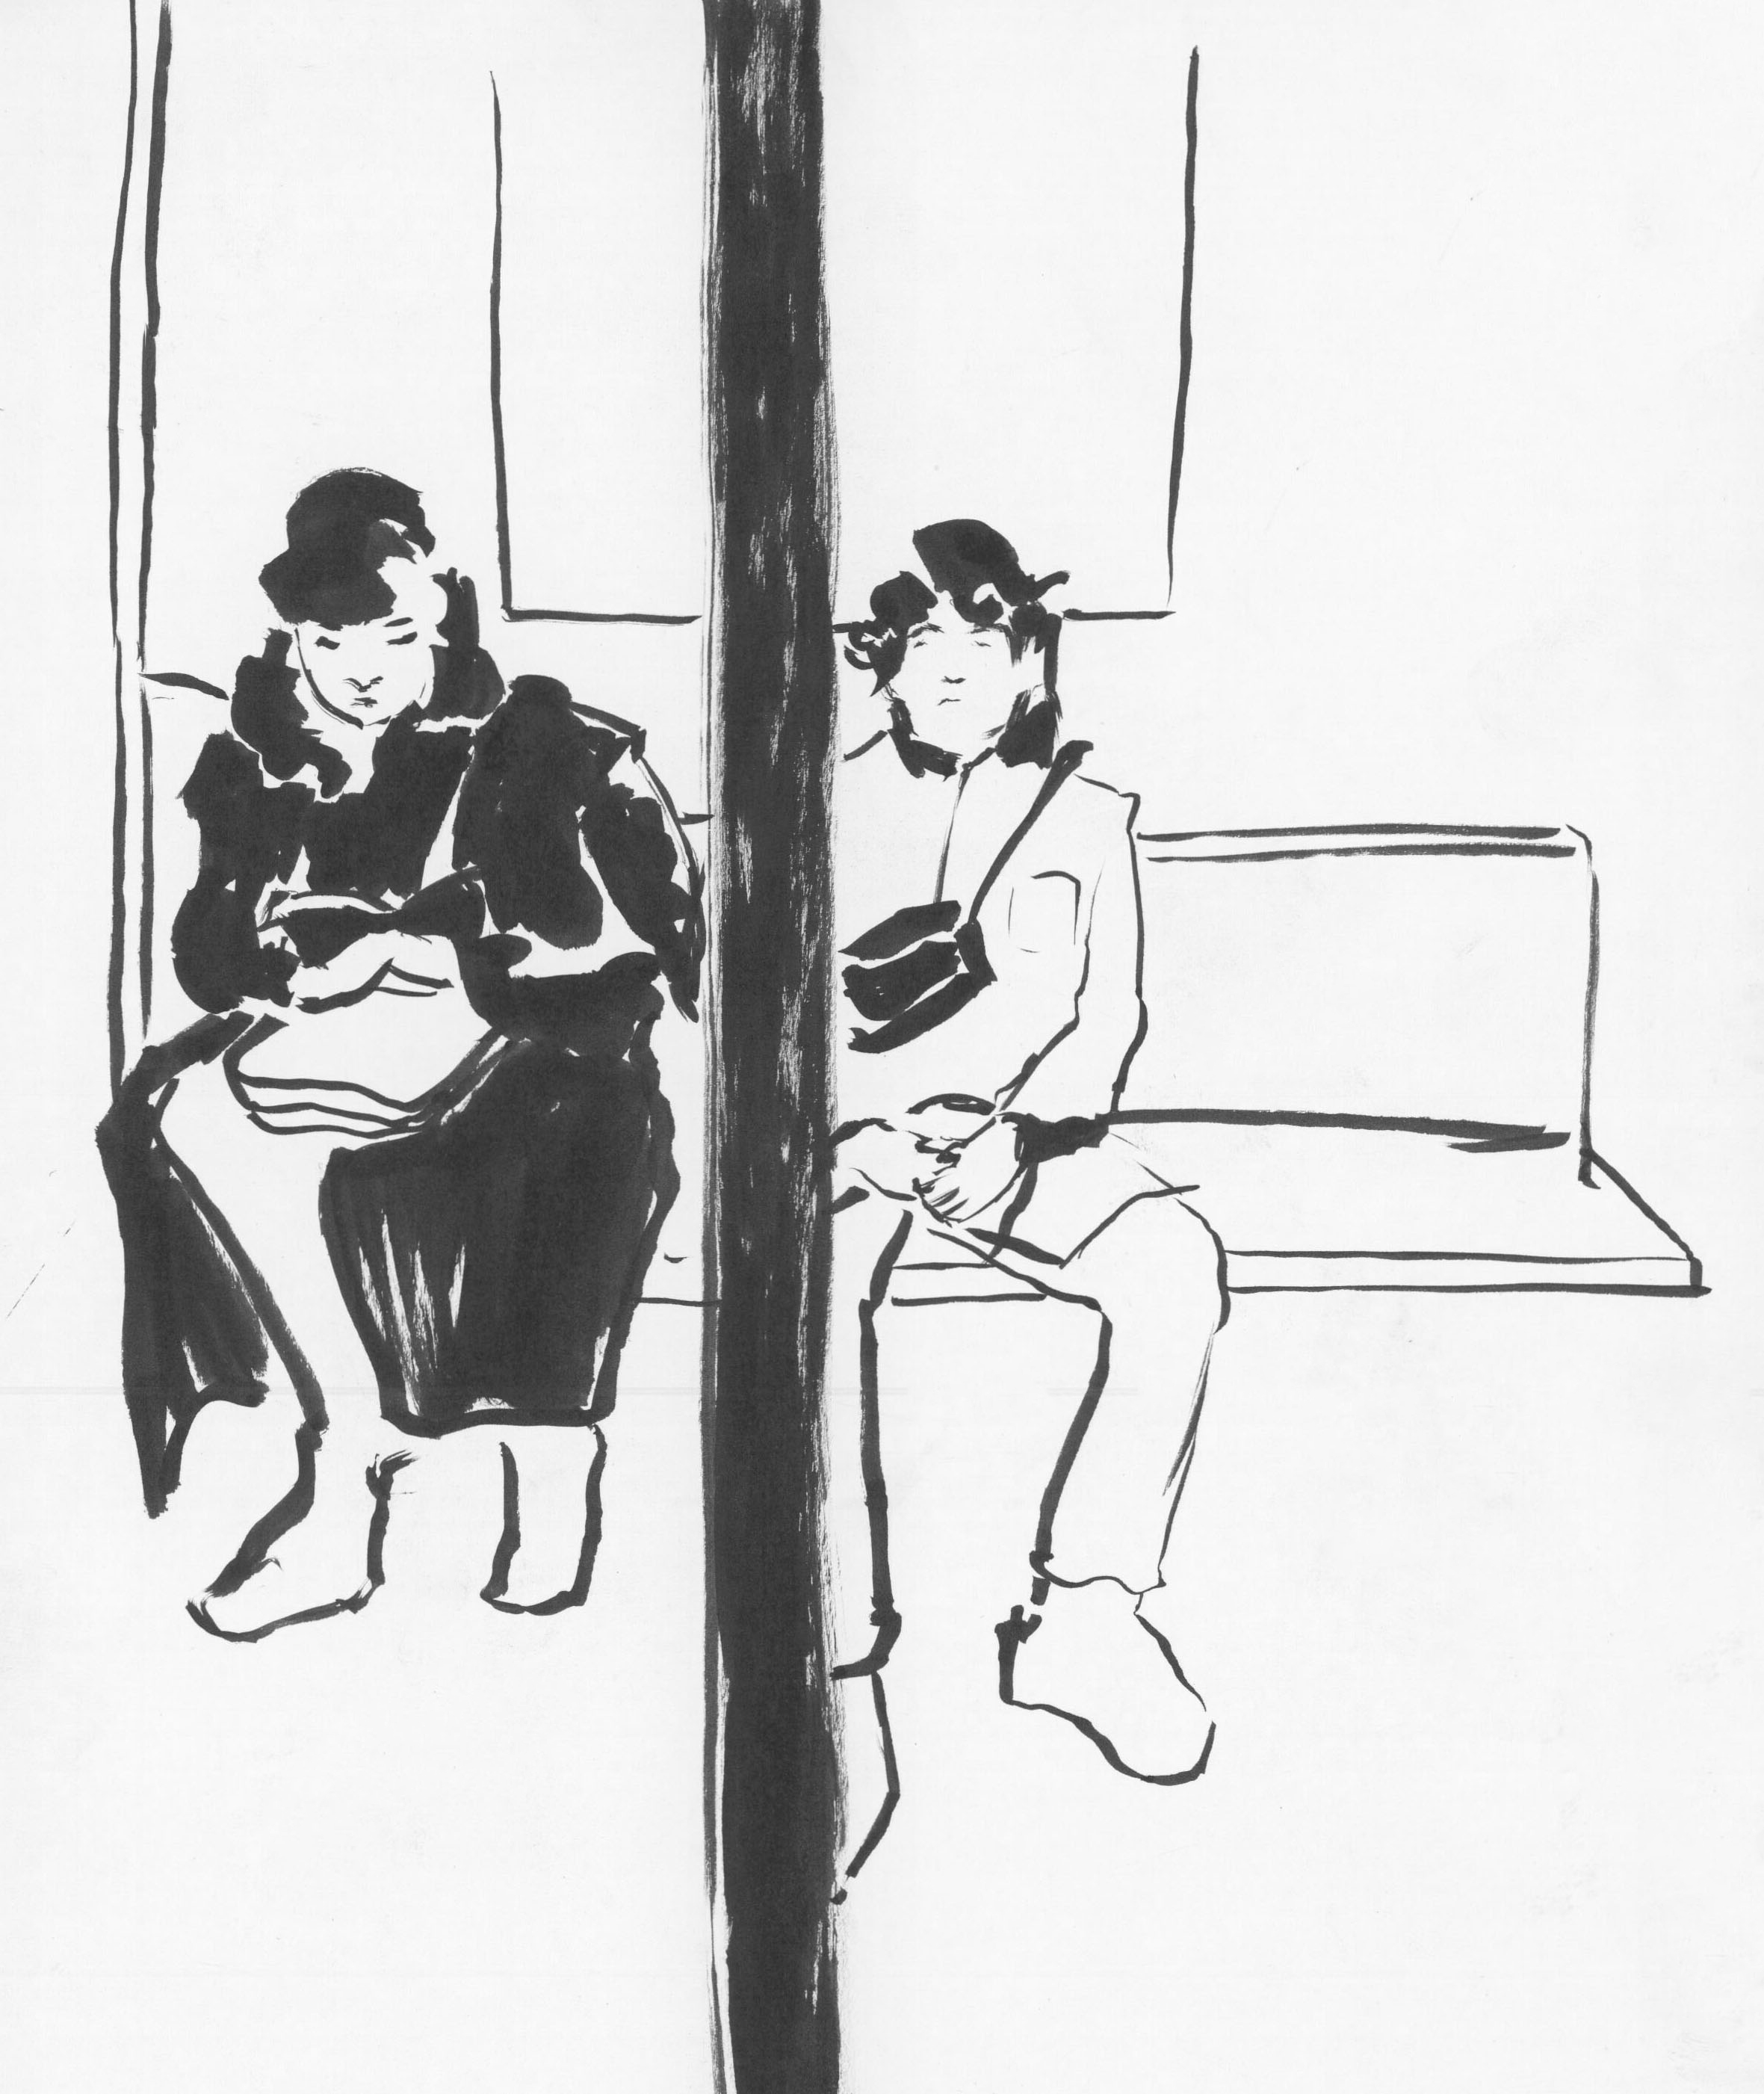 Subway Sketch 2